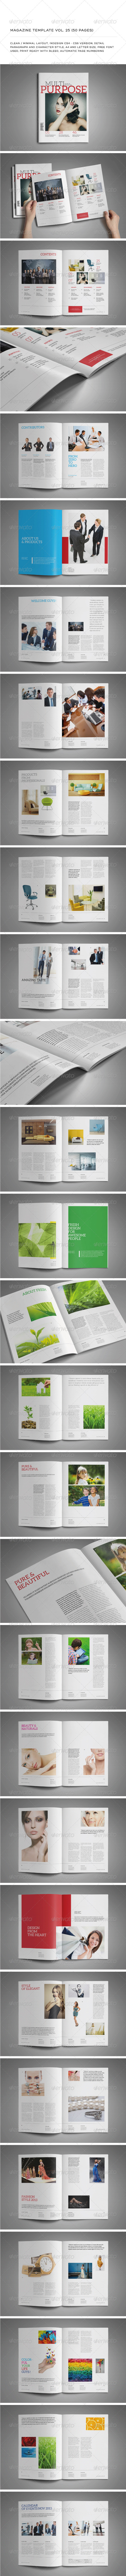 A4/Letter 50 Pages Mgz (Vol. 25) - Magazines Print Templates